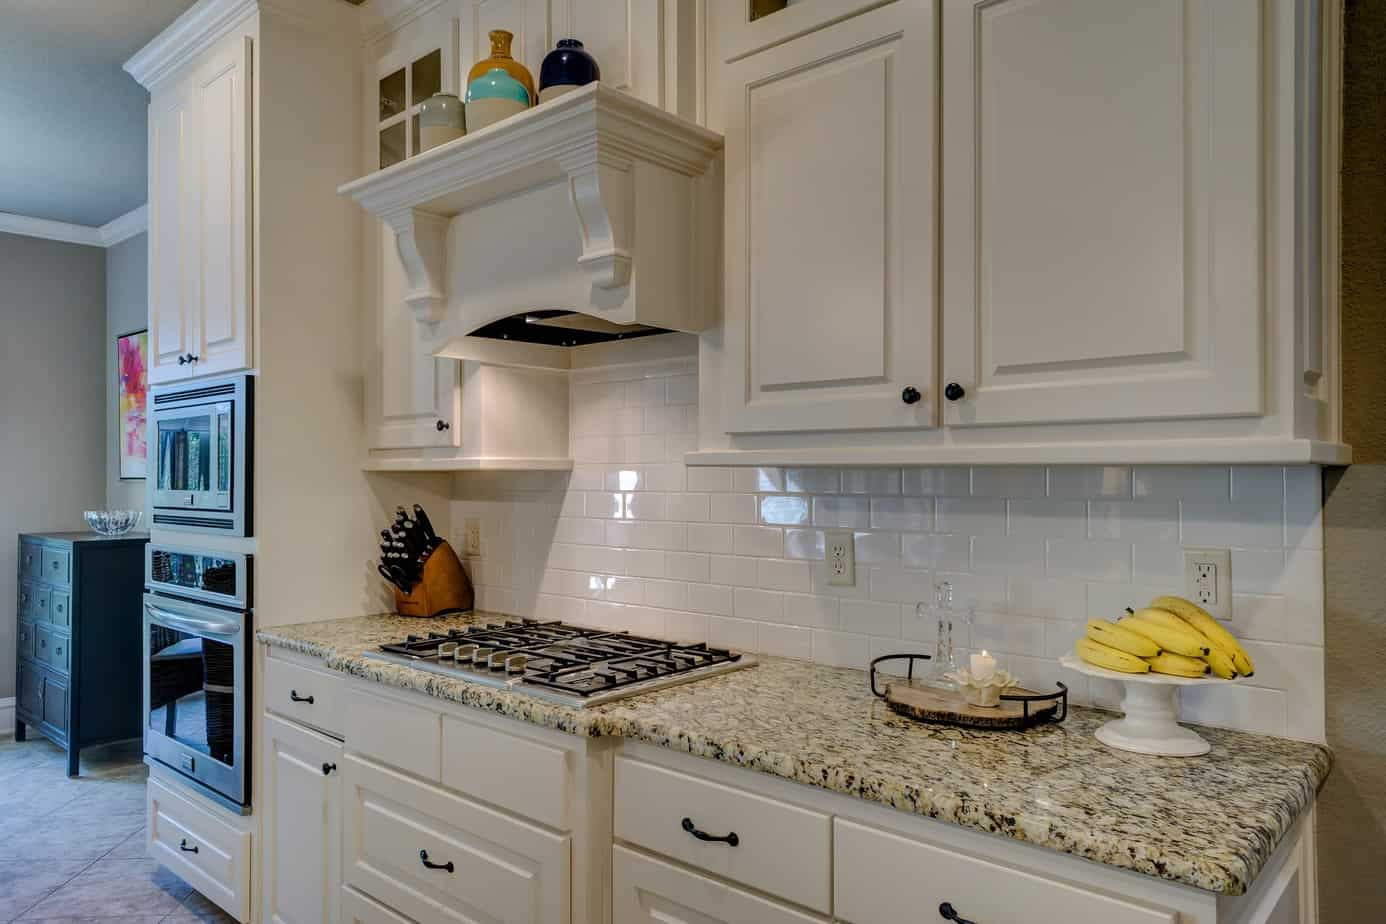 The Best Products To Clean Kitchen Cabinets 2020 Home Fixer